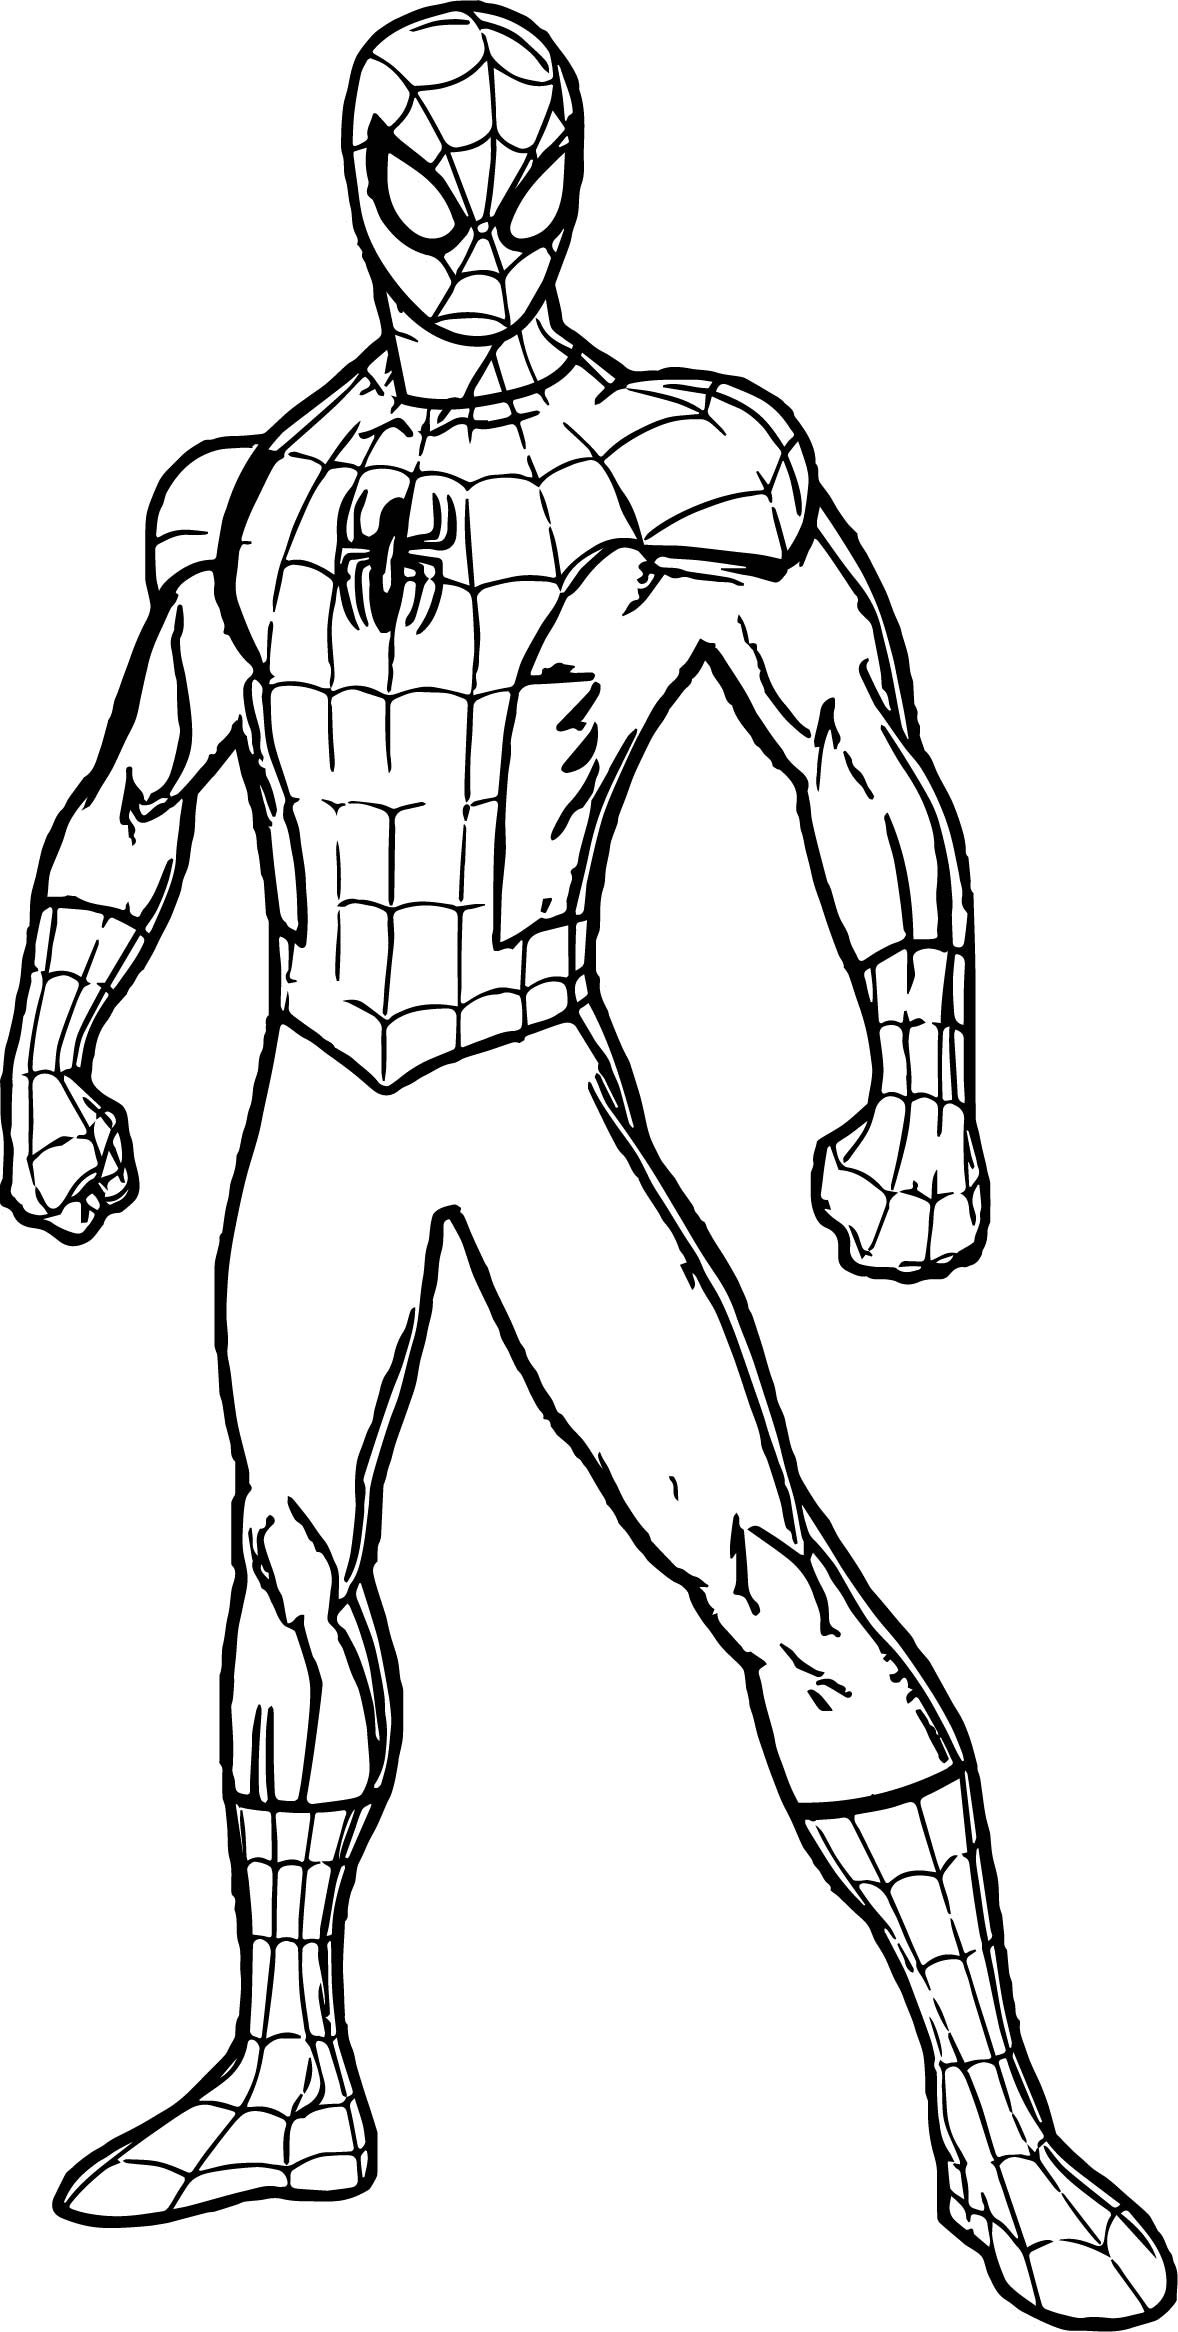 1178x2332 Spidey Spider Man Coloring Page Wecoloringpage